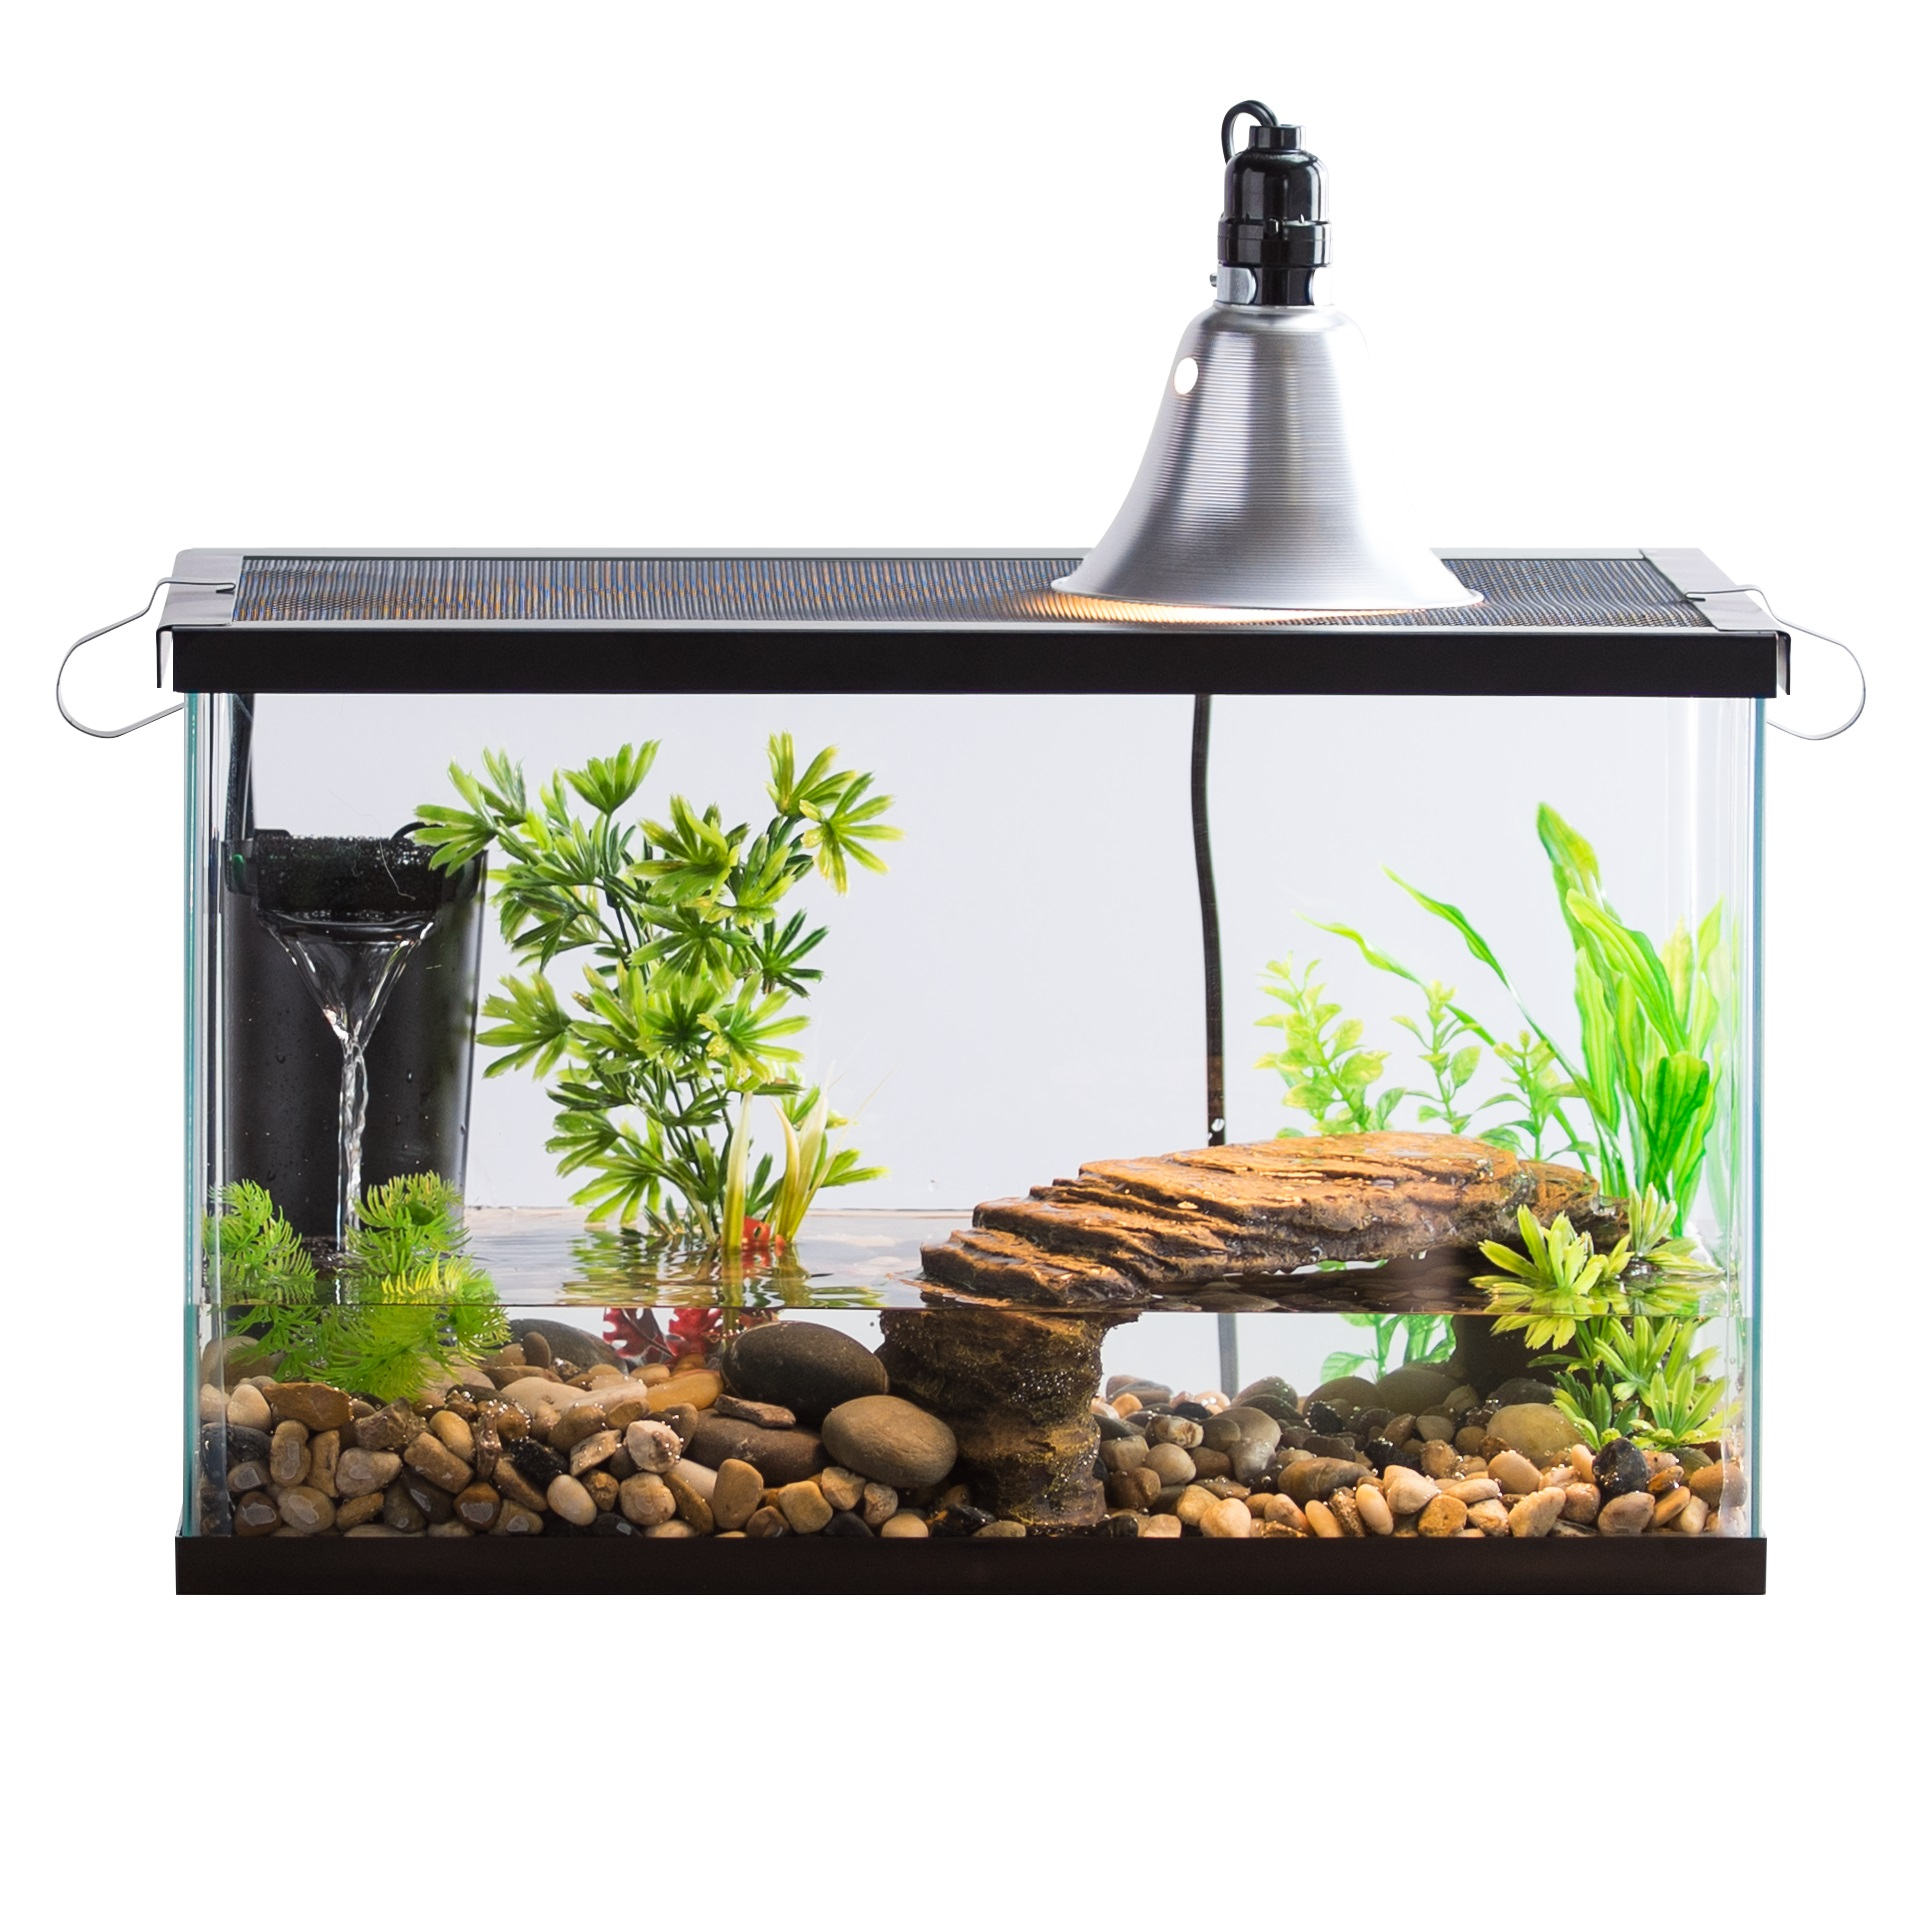 Aqua Culture 10-Gallon Turtle & Aquatic Reptile Habitat Starter Kit by Wal-Mart Stores, Inc.